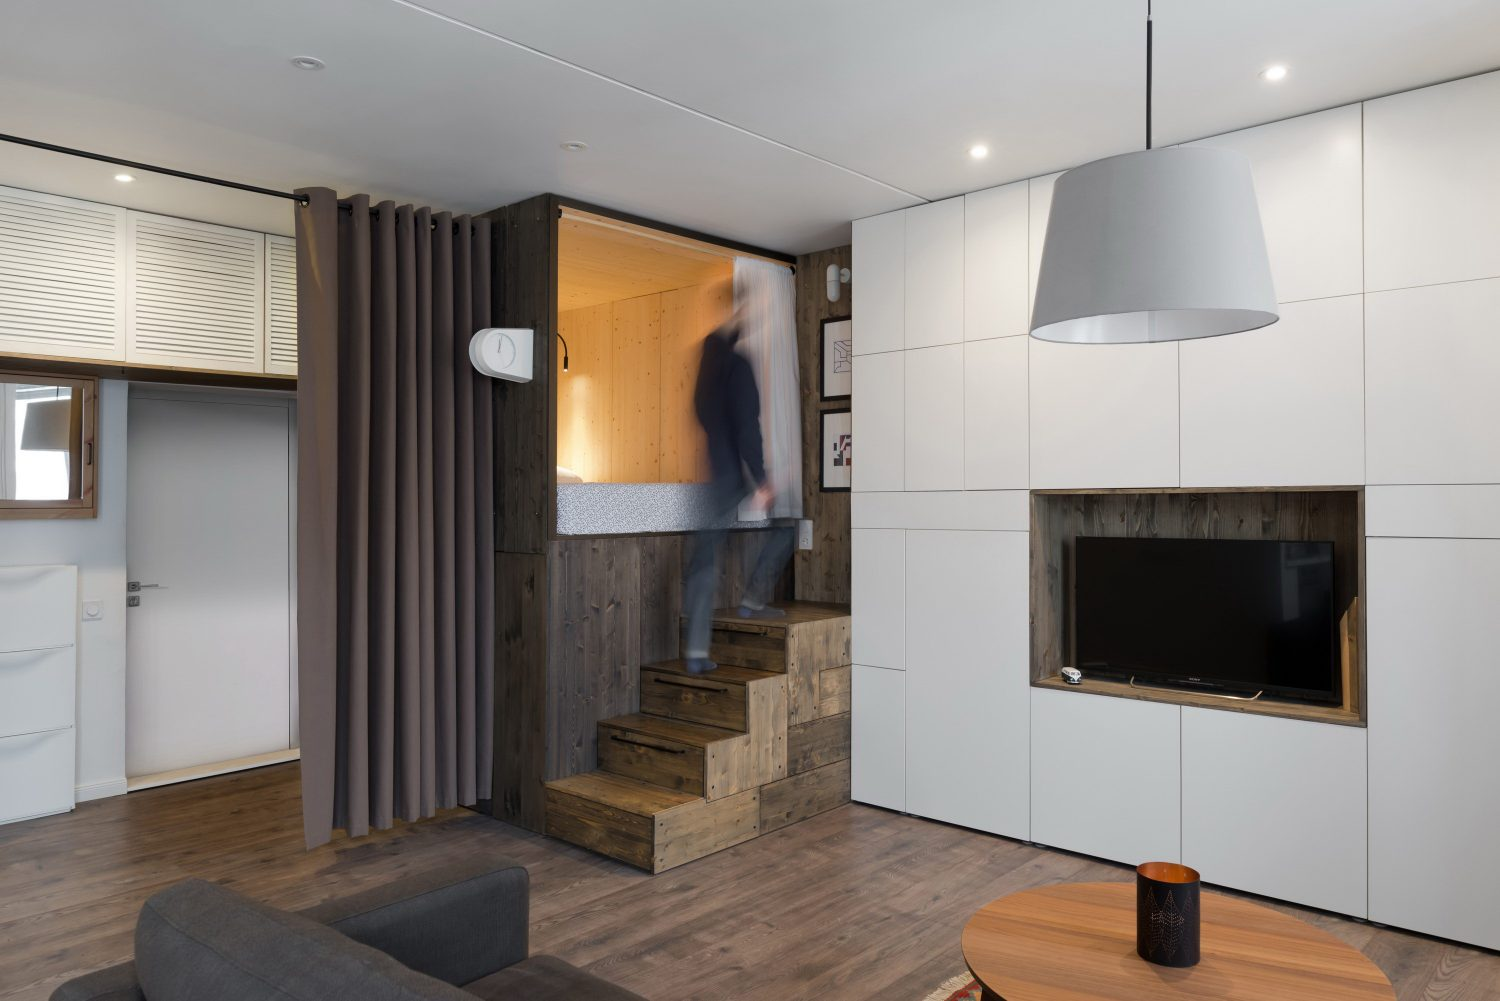 35m2 Flat Micro-Apartment by Studio Bazi